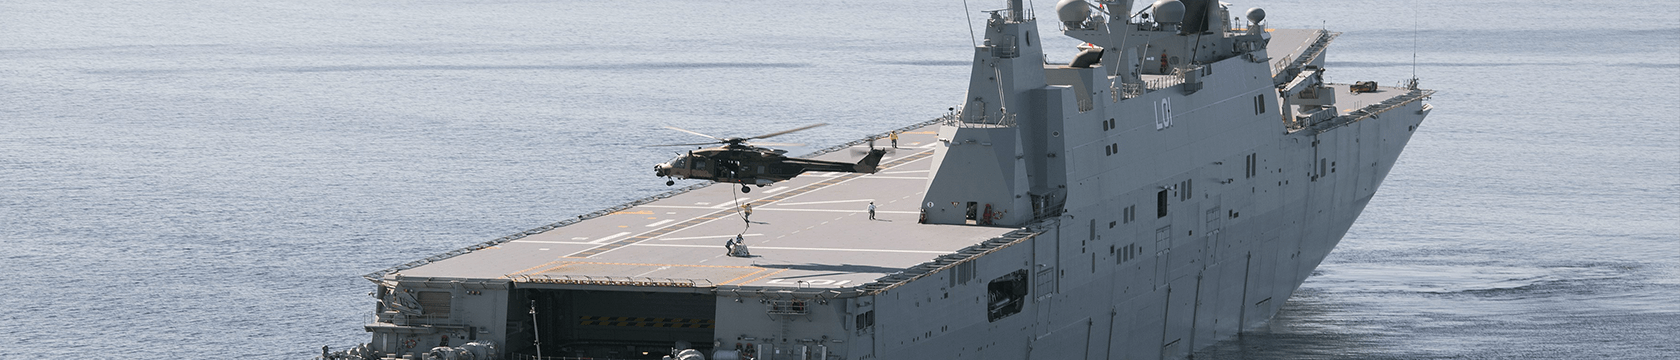 Navy Landing Helicopter Dock